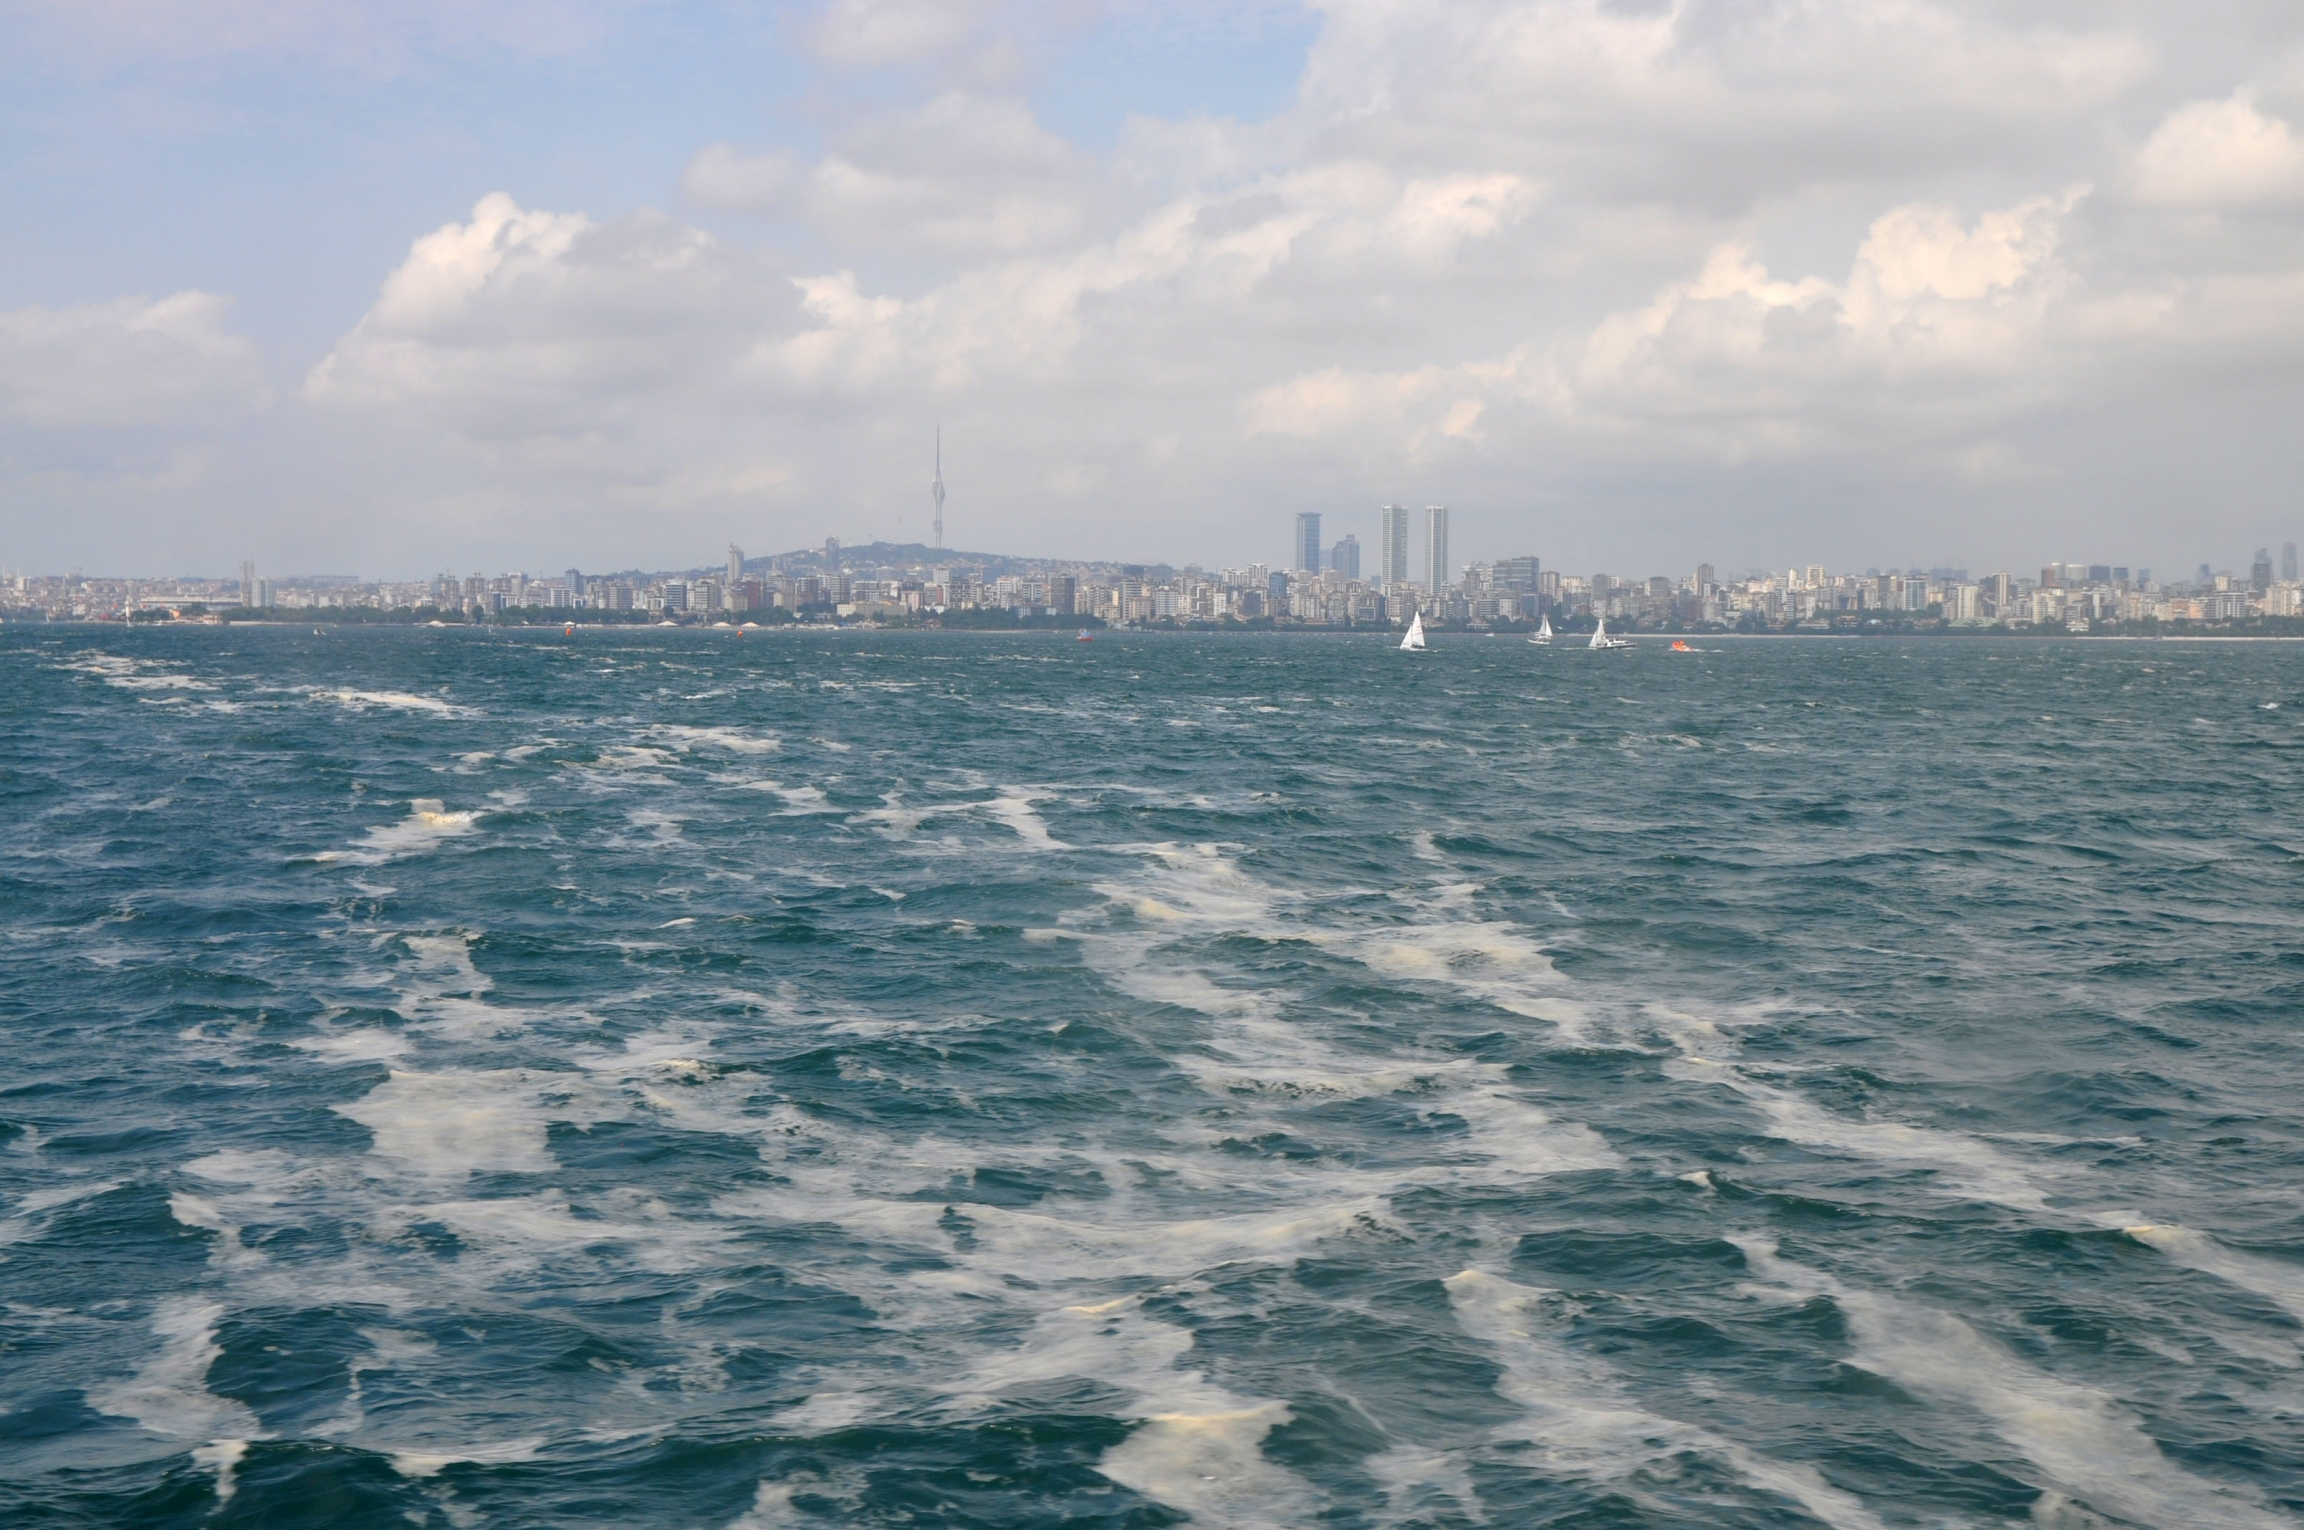 Threads of sea snot, pushed into open waters by the wind, float in front of the Istanbul skyline.